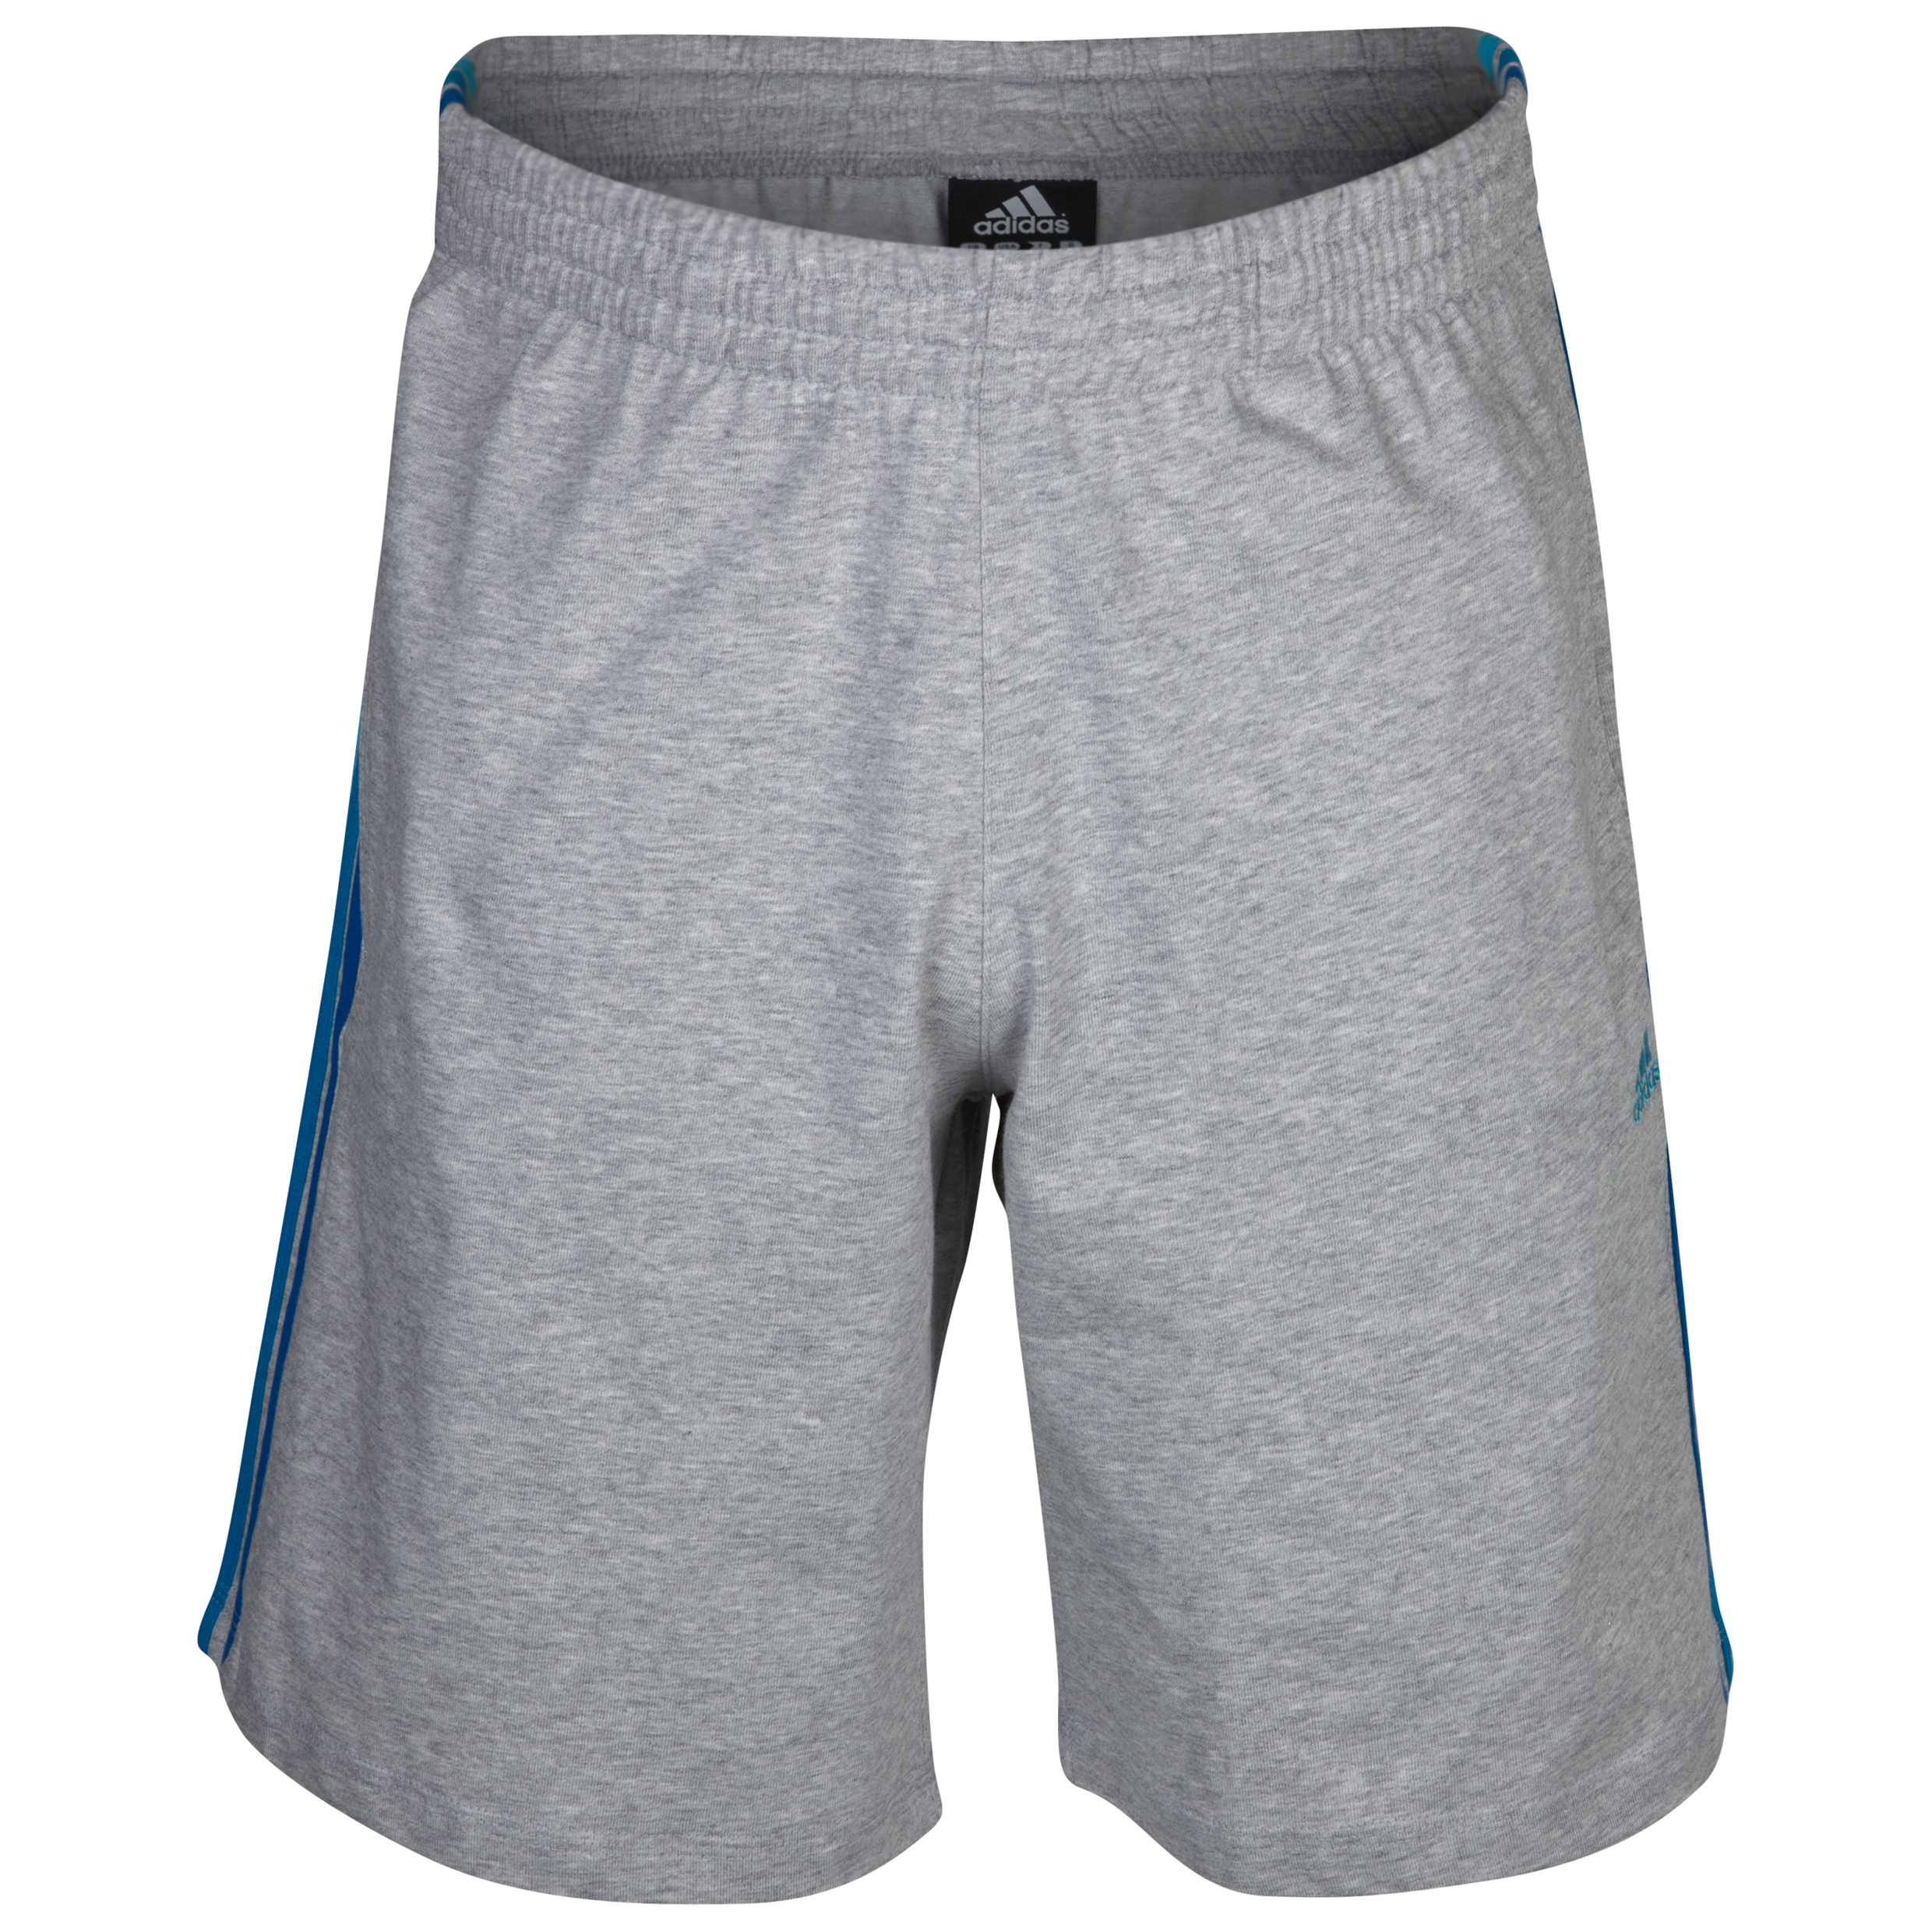 adidas Essentials 3 Stripe Short - Medium Grey Heather/Super Cyan S12